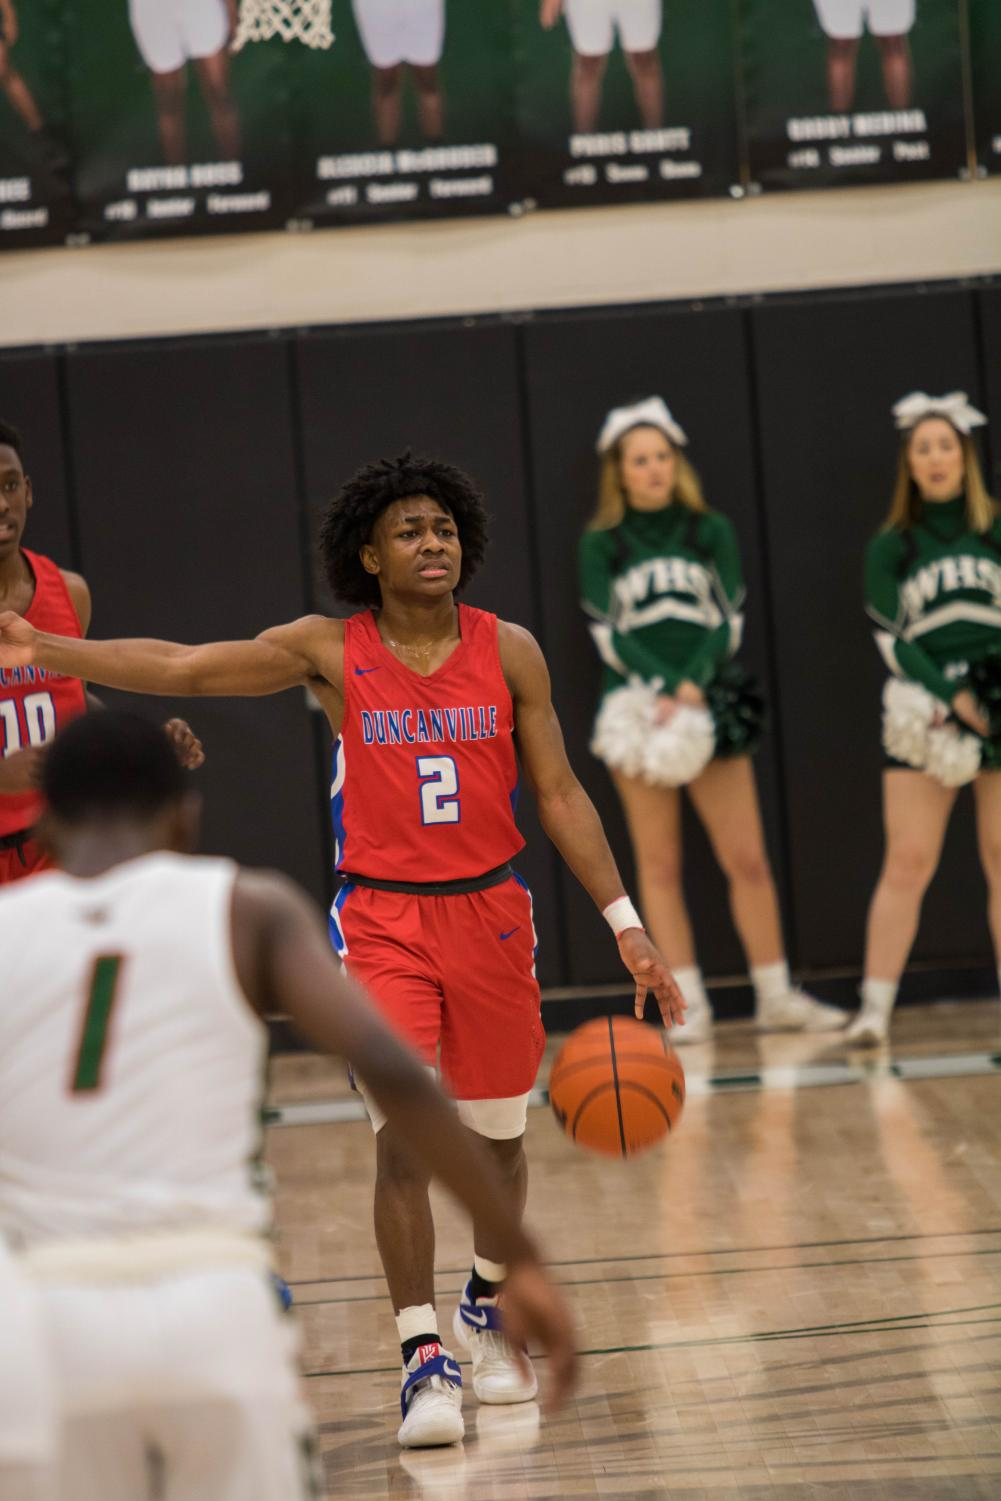 Duncanville Defeats Waxahachie in Round 1 Playoff Game